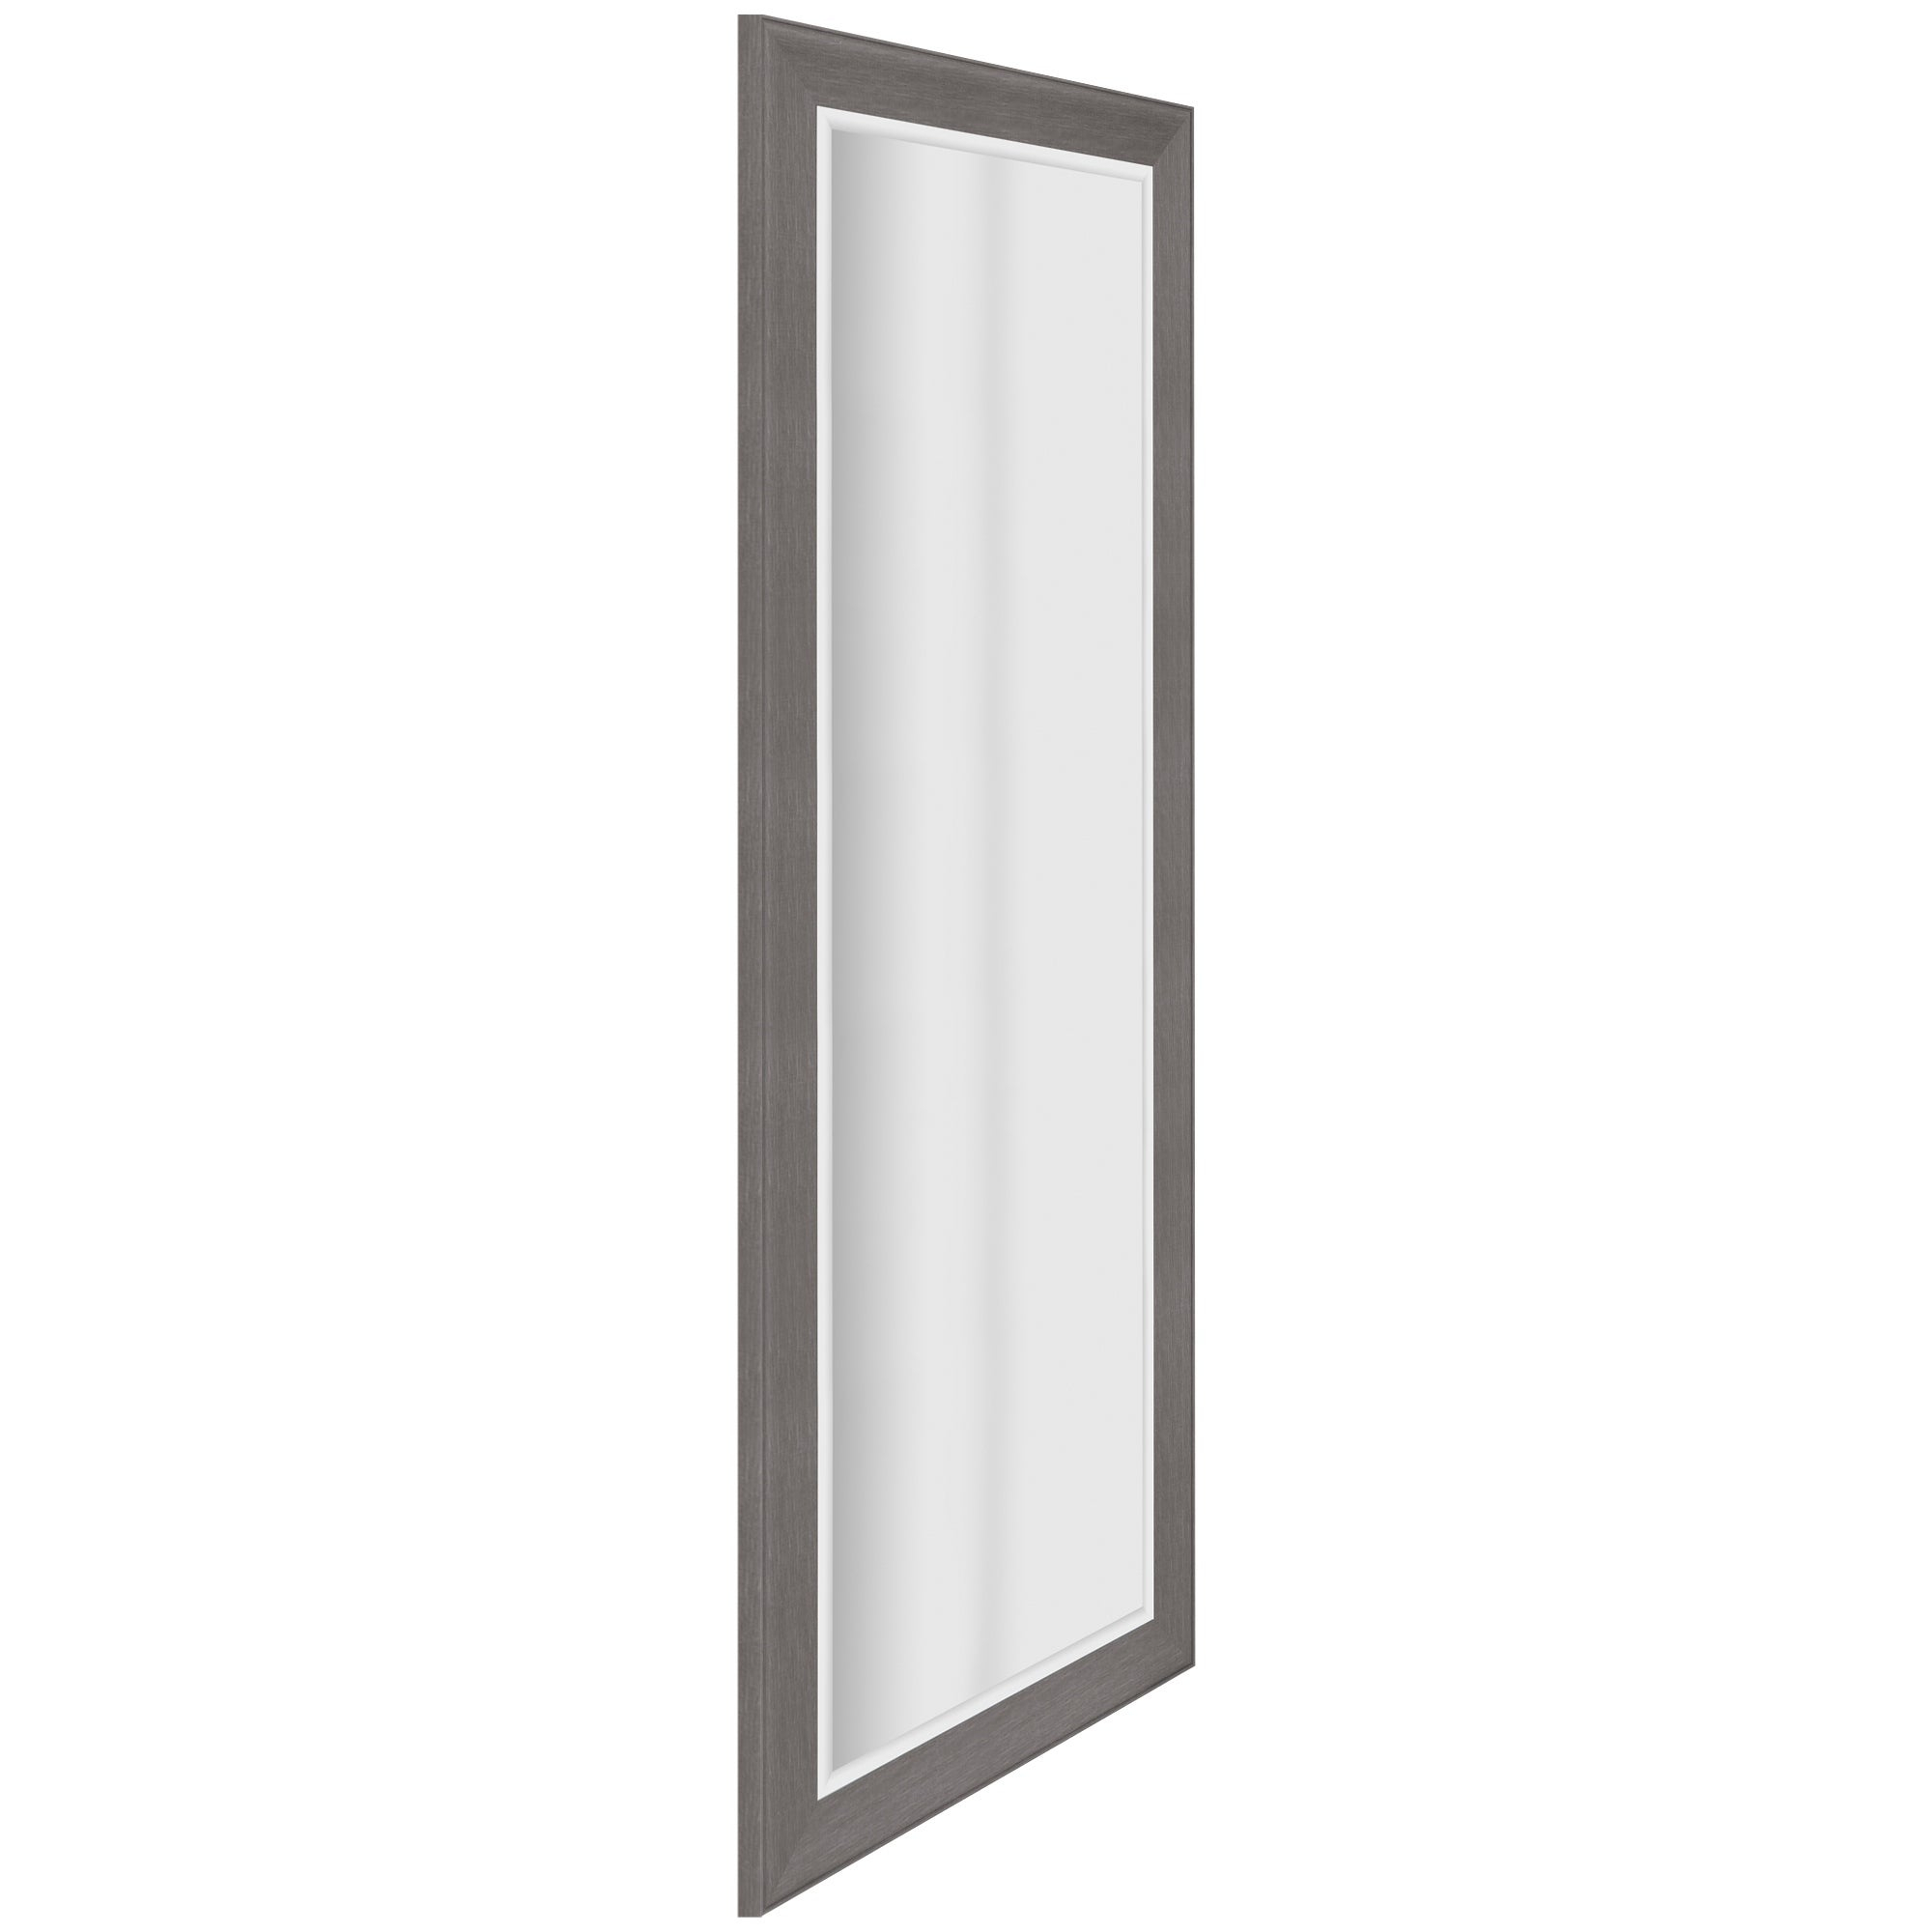 Graywash Woodgrain Framed Beveled Accent Wall Mirror – Grey Throughout Farmhouse Woodgrain And Leaf Accent Wall Mirrors (View 9 of 20)